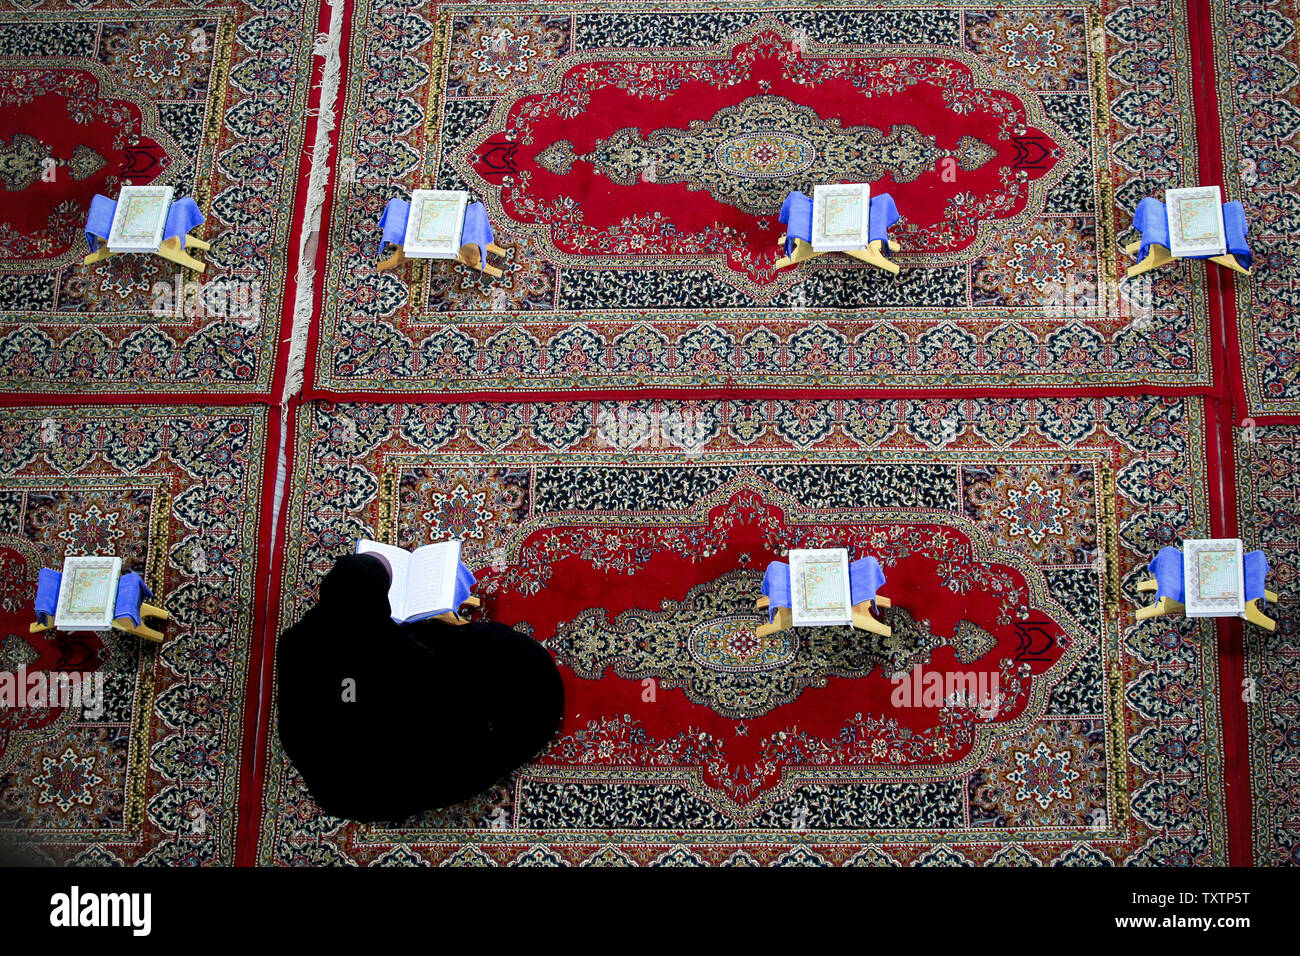 The Quran Stock Photos & The Quran Stock Images - Page 4 - Alamy